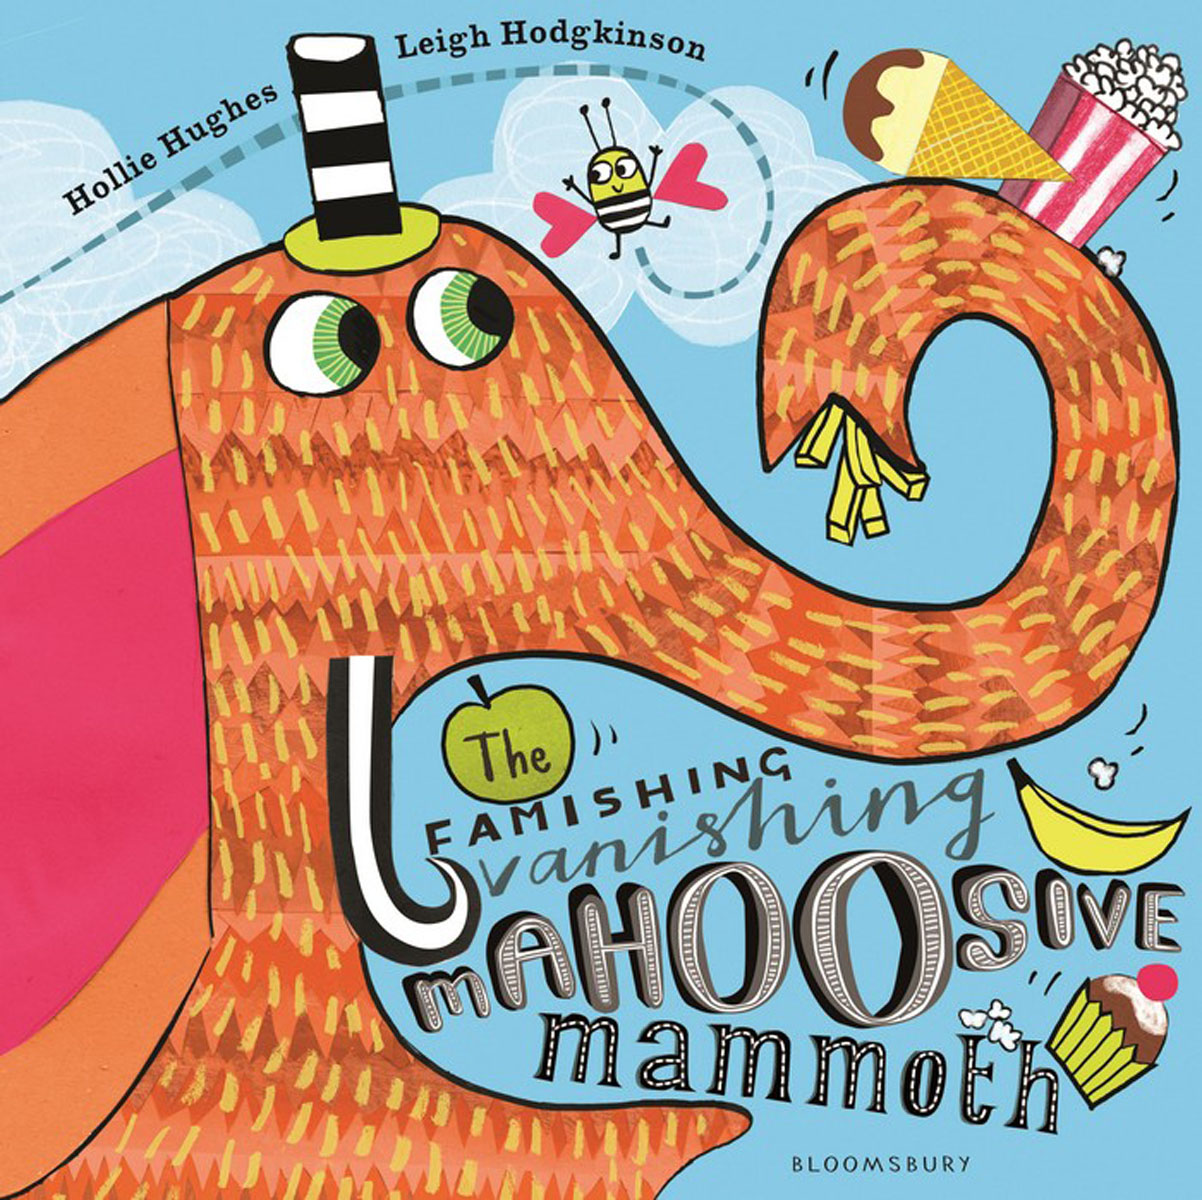 The Famishing Vanishing Mahoosive Mammoth